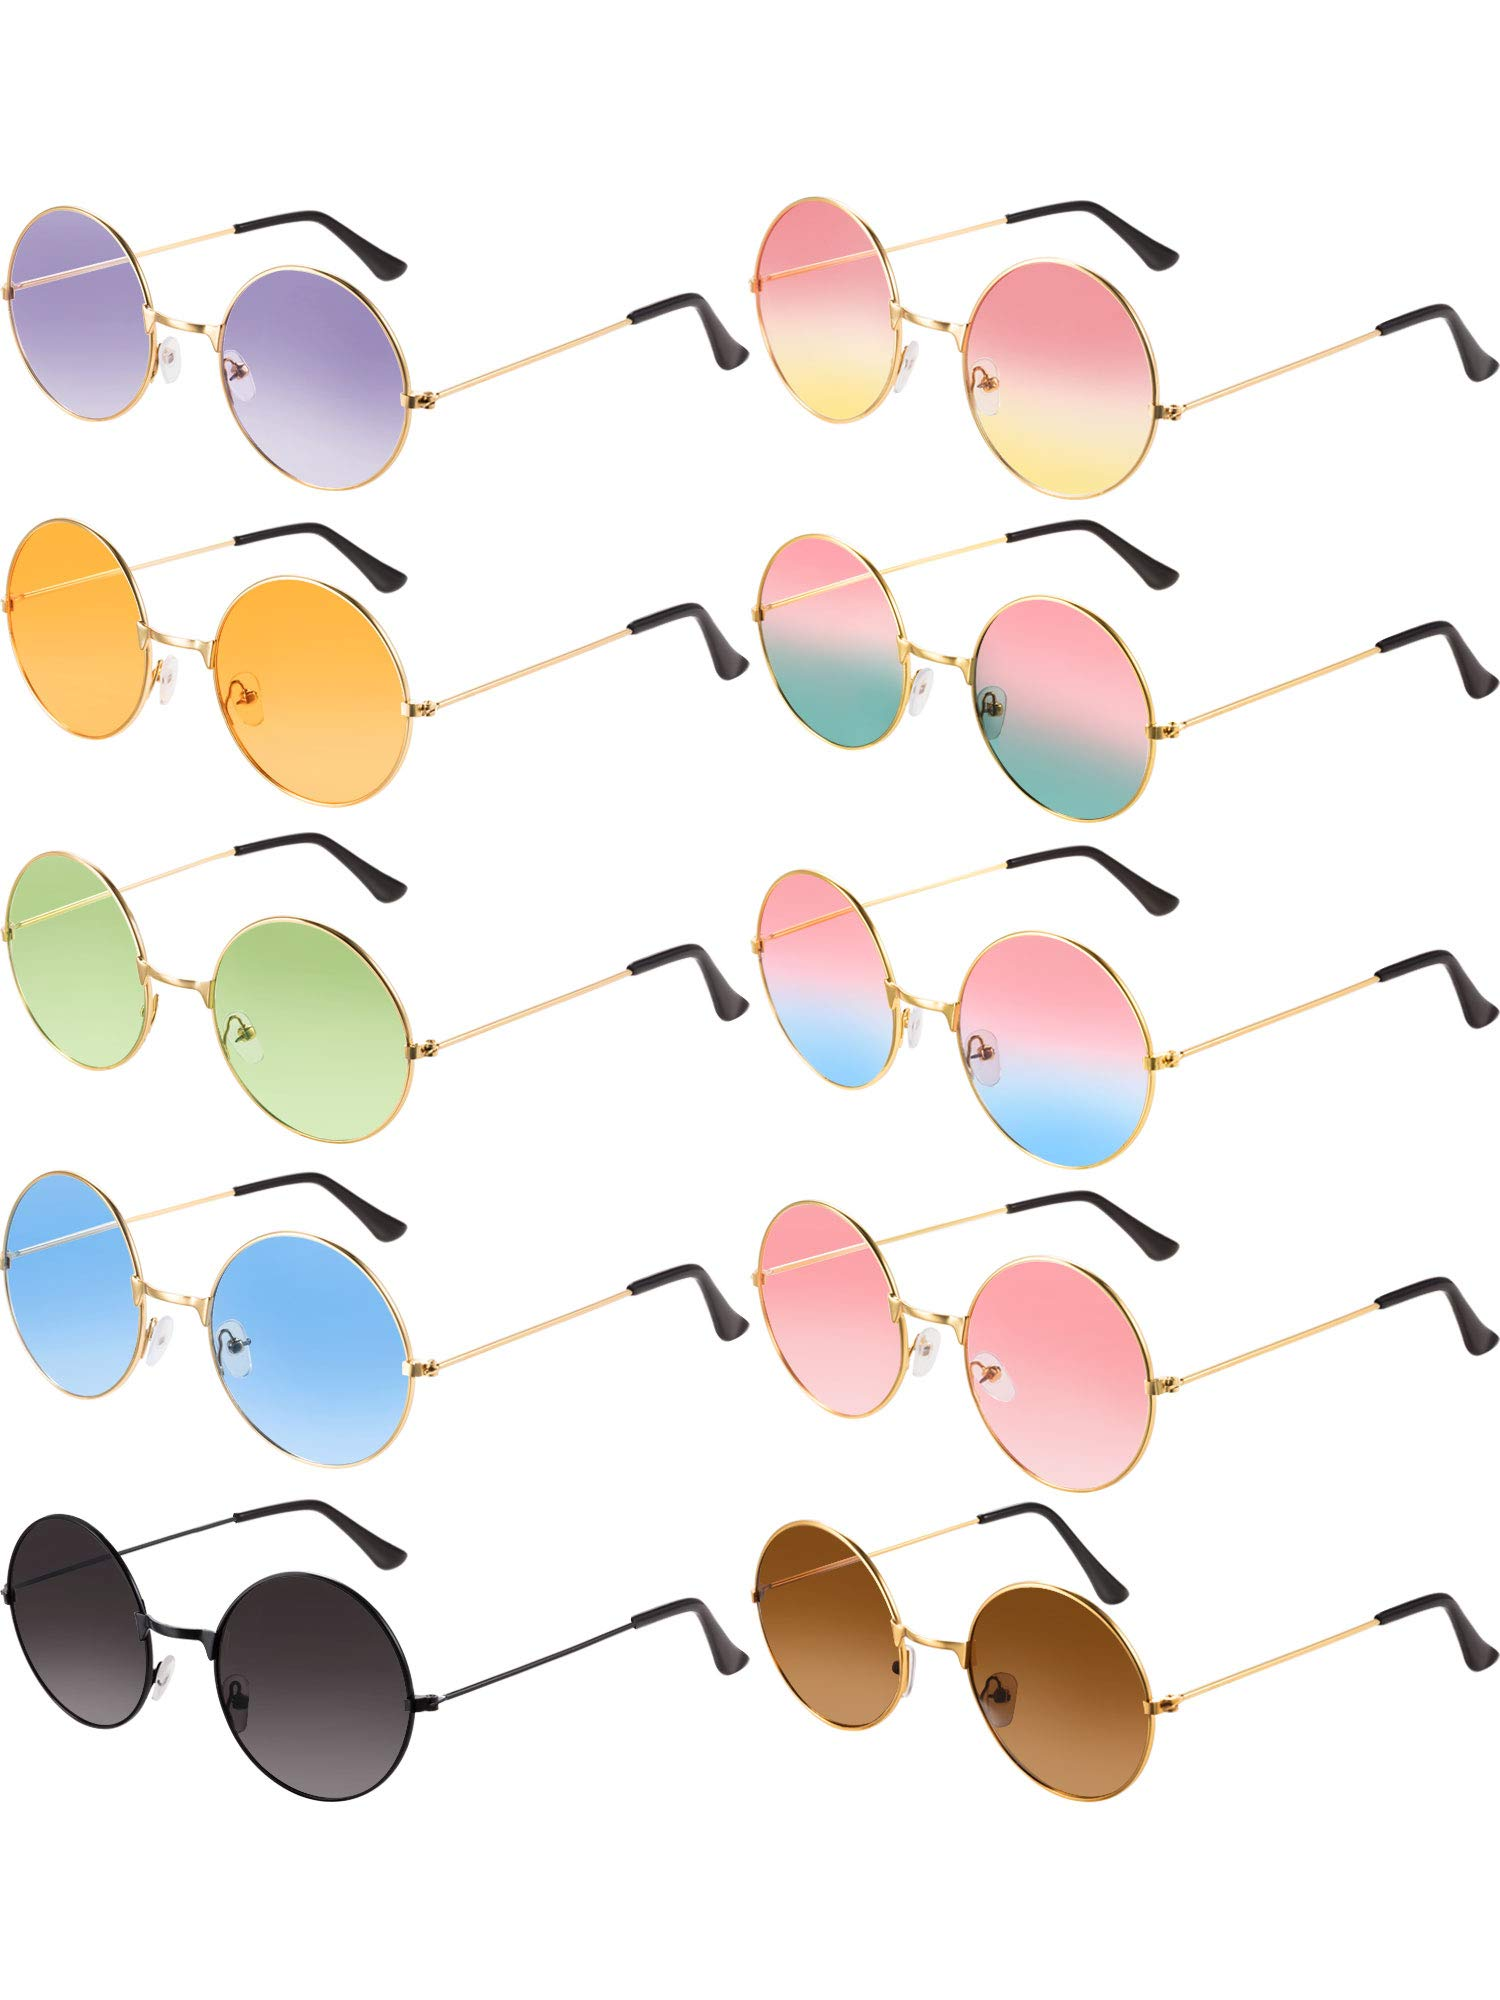 Blulu 10 Pairs Round Hippie Sunglasses John 60's Style Circle Colored Glasses (Gold Frame 2) by Blulu